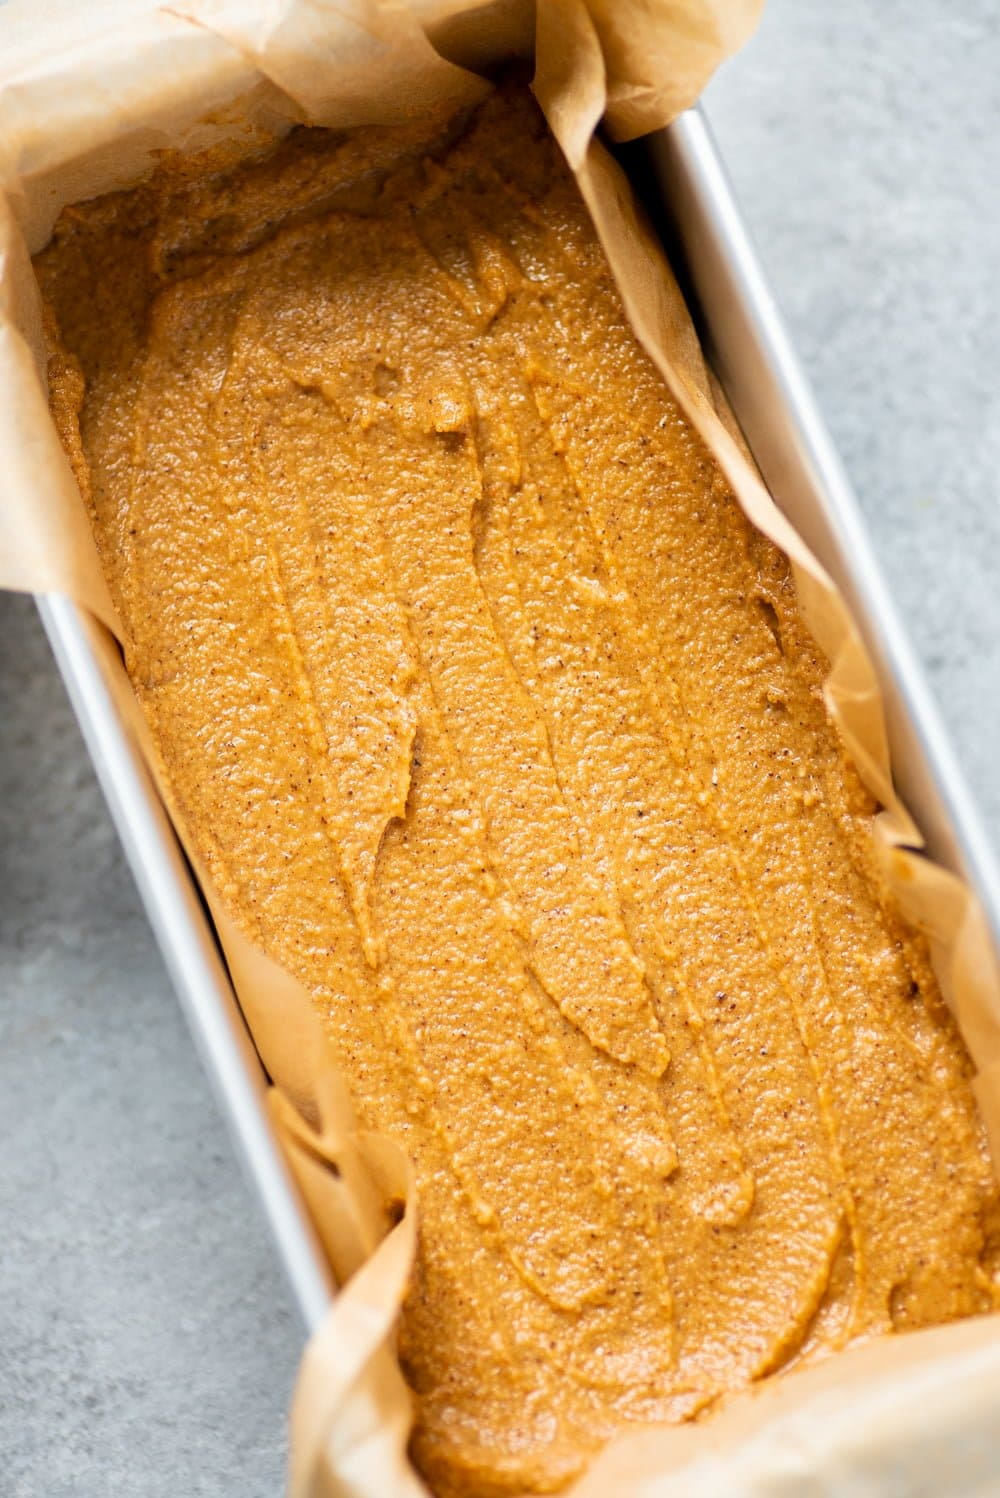 Batter for Grain-Free Pumpkin Bread spread into a loaf pan